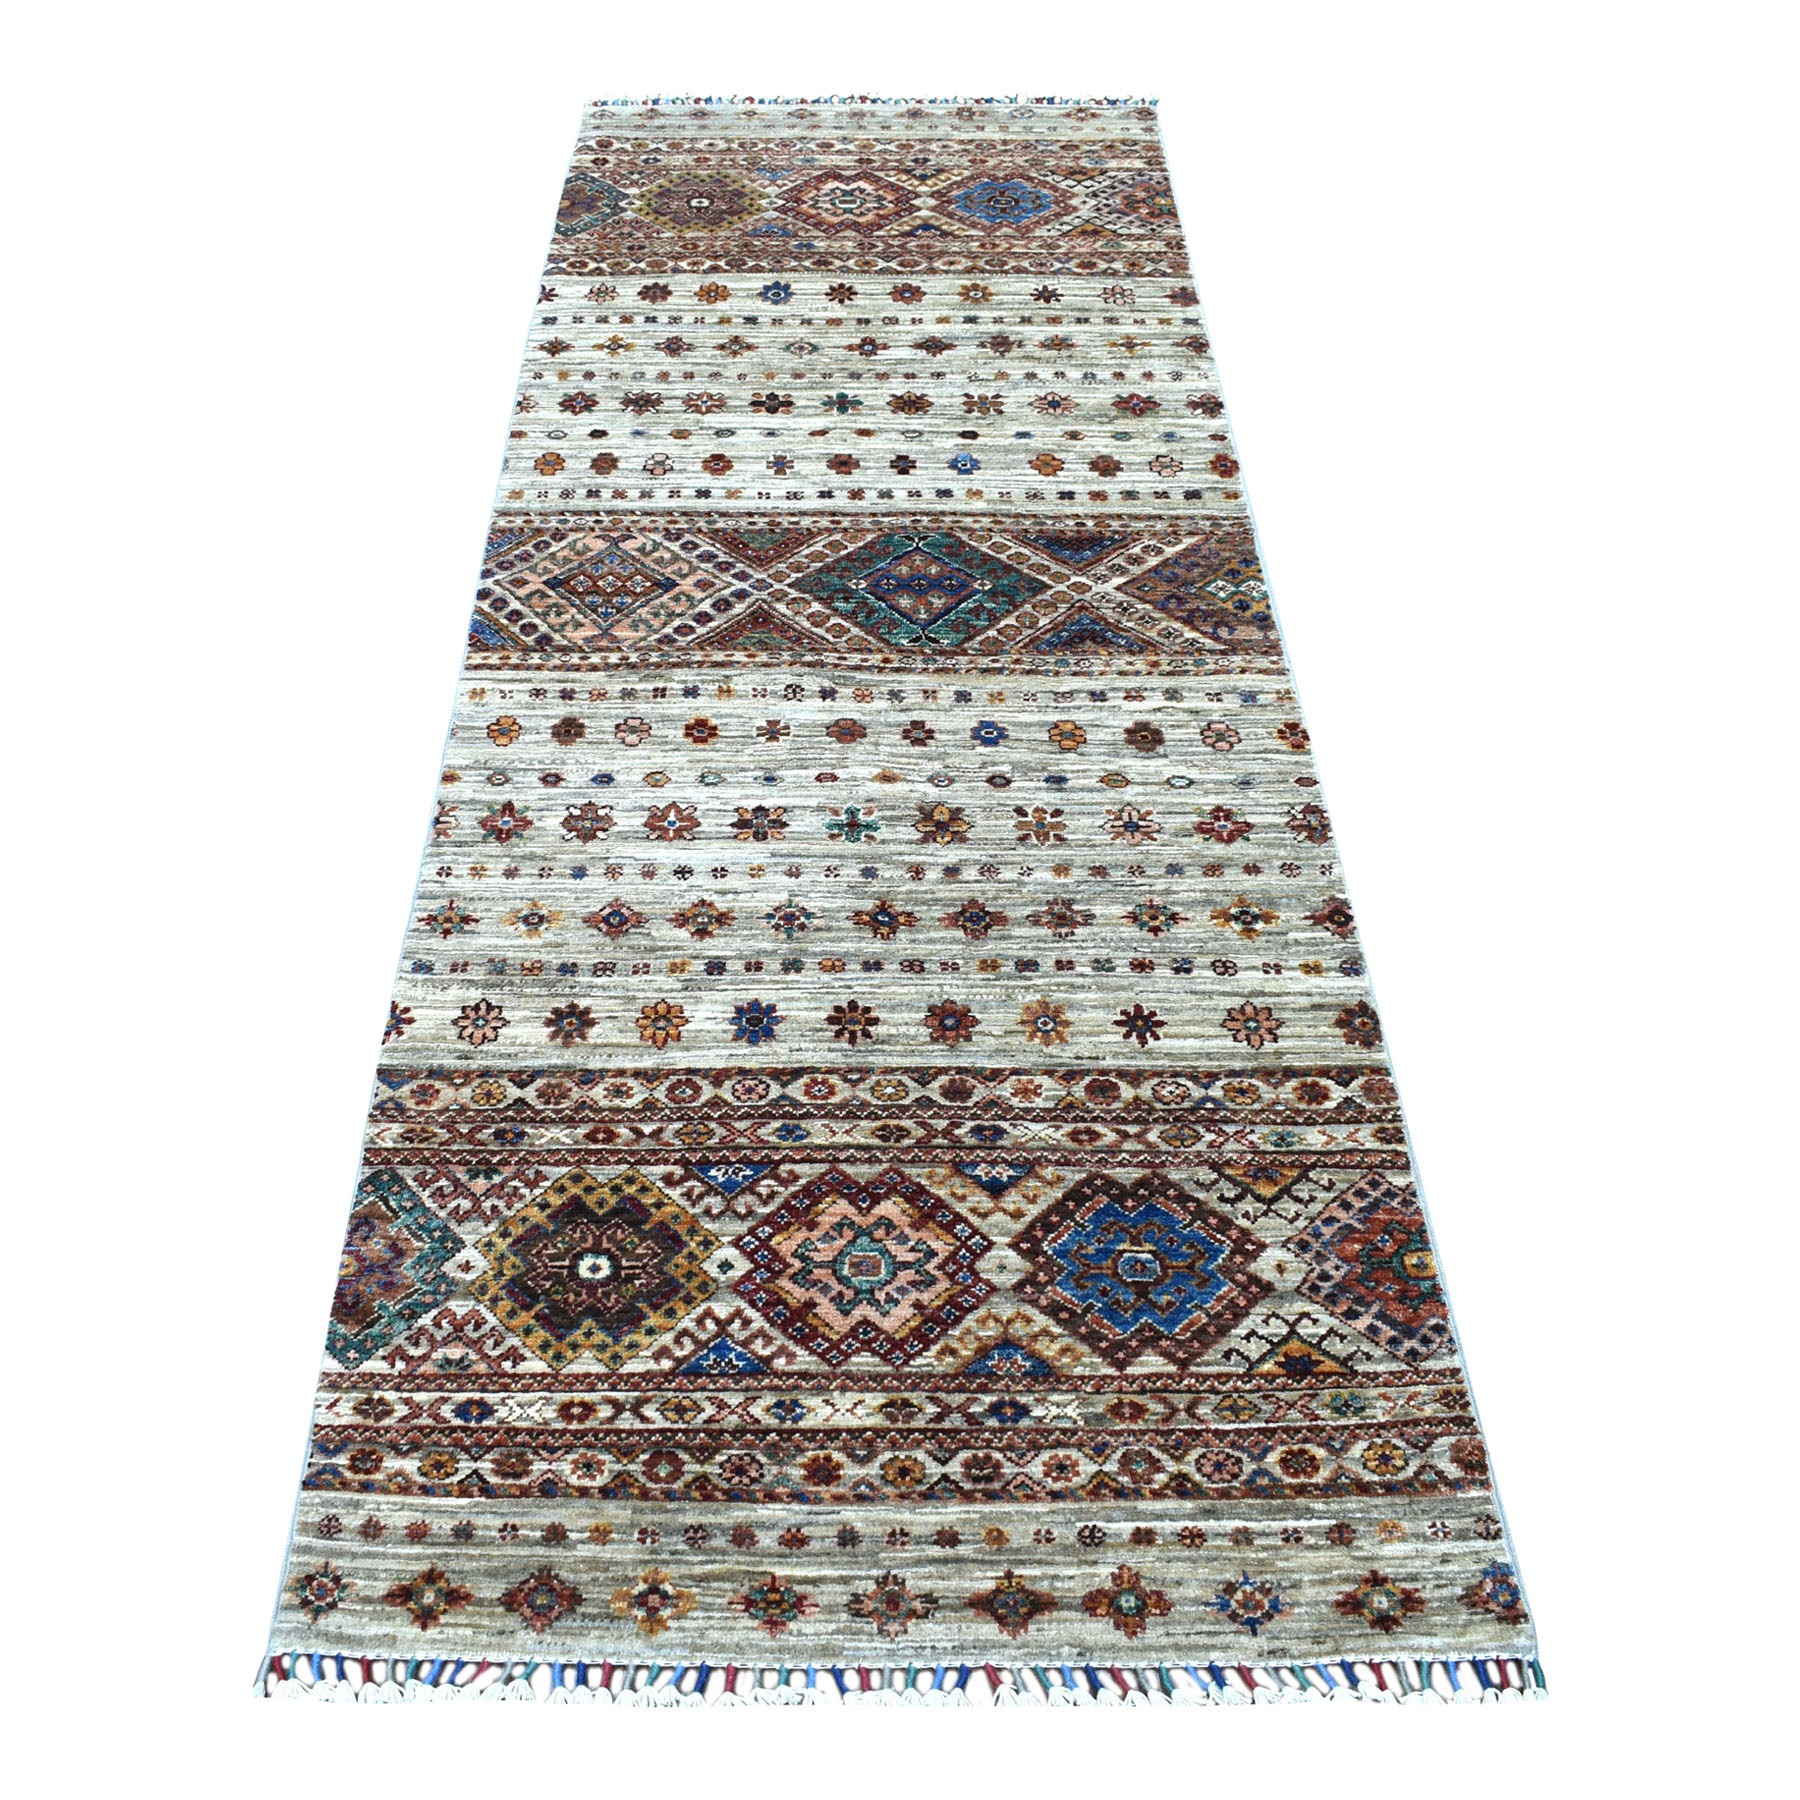 "2'10""x8' Light Gray Hand Knotted Super Kazak In A Colorful Palette Khorjin Design With Colorful Tassles Pure Wool Oriental Runner Rug"